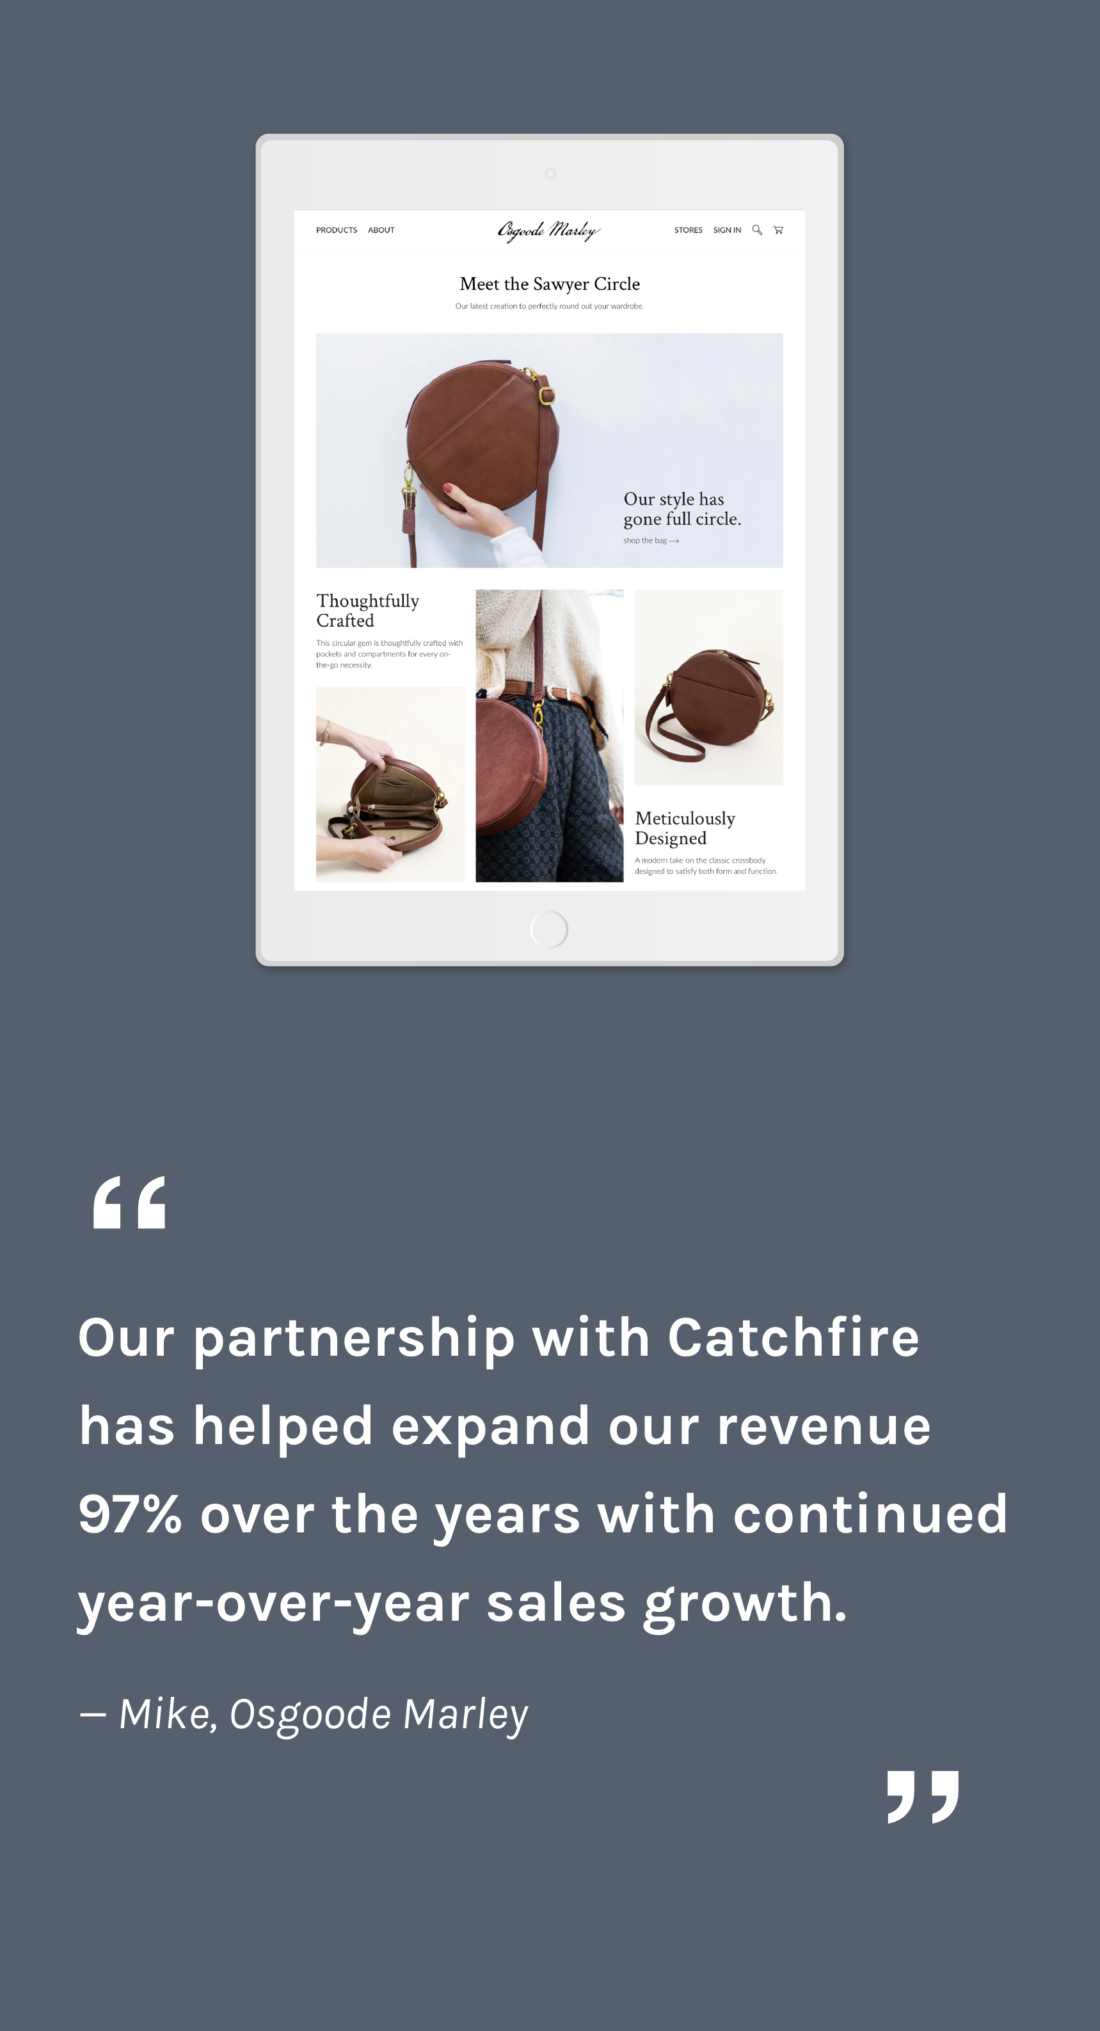 Our partnership with Catchfire has helped expand our revenue 97% over the years with continued year-over-year sales growth. — Mike, Osgoode Marley